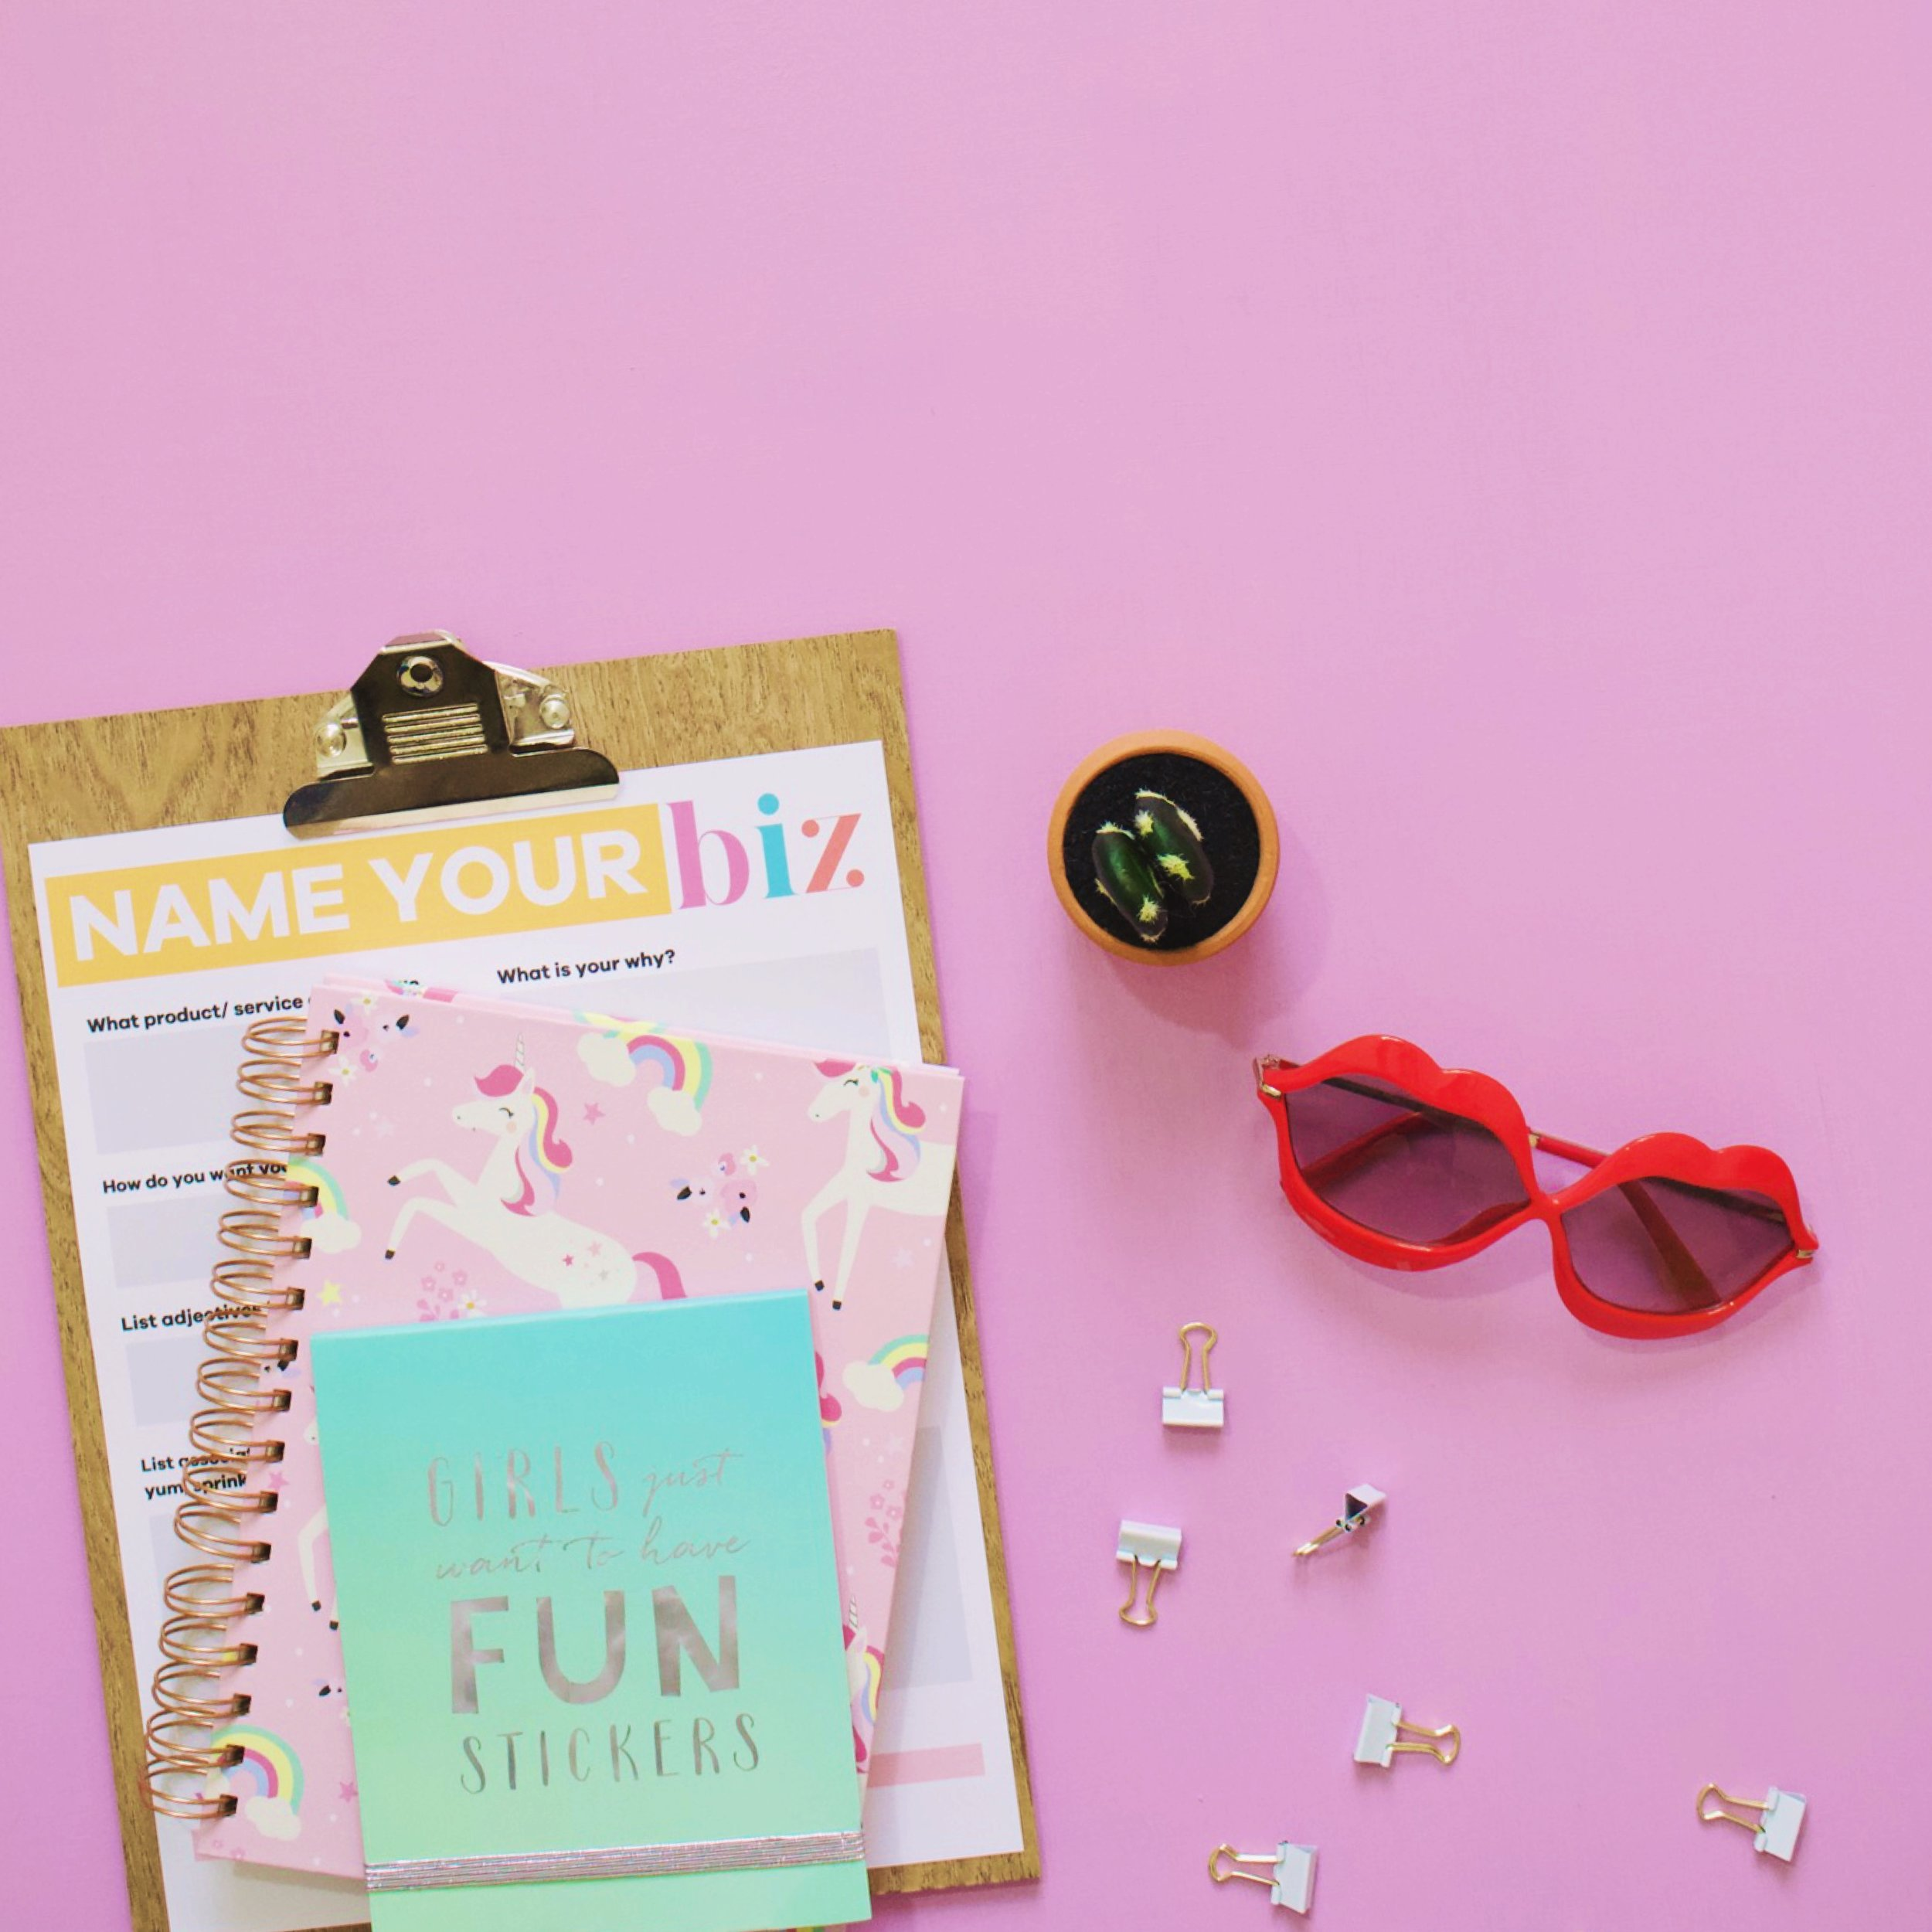 Name your Business Worksheet | How to name your creative business | Lady and Company Creative | Branding | Empowering Women Through Badass Brands